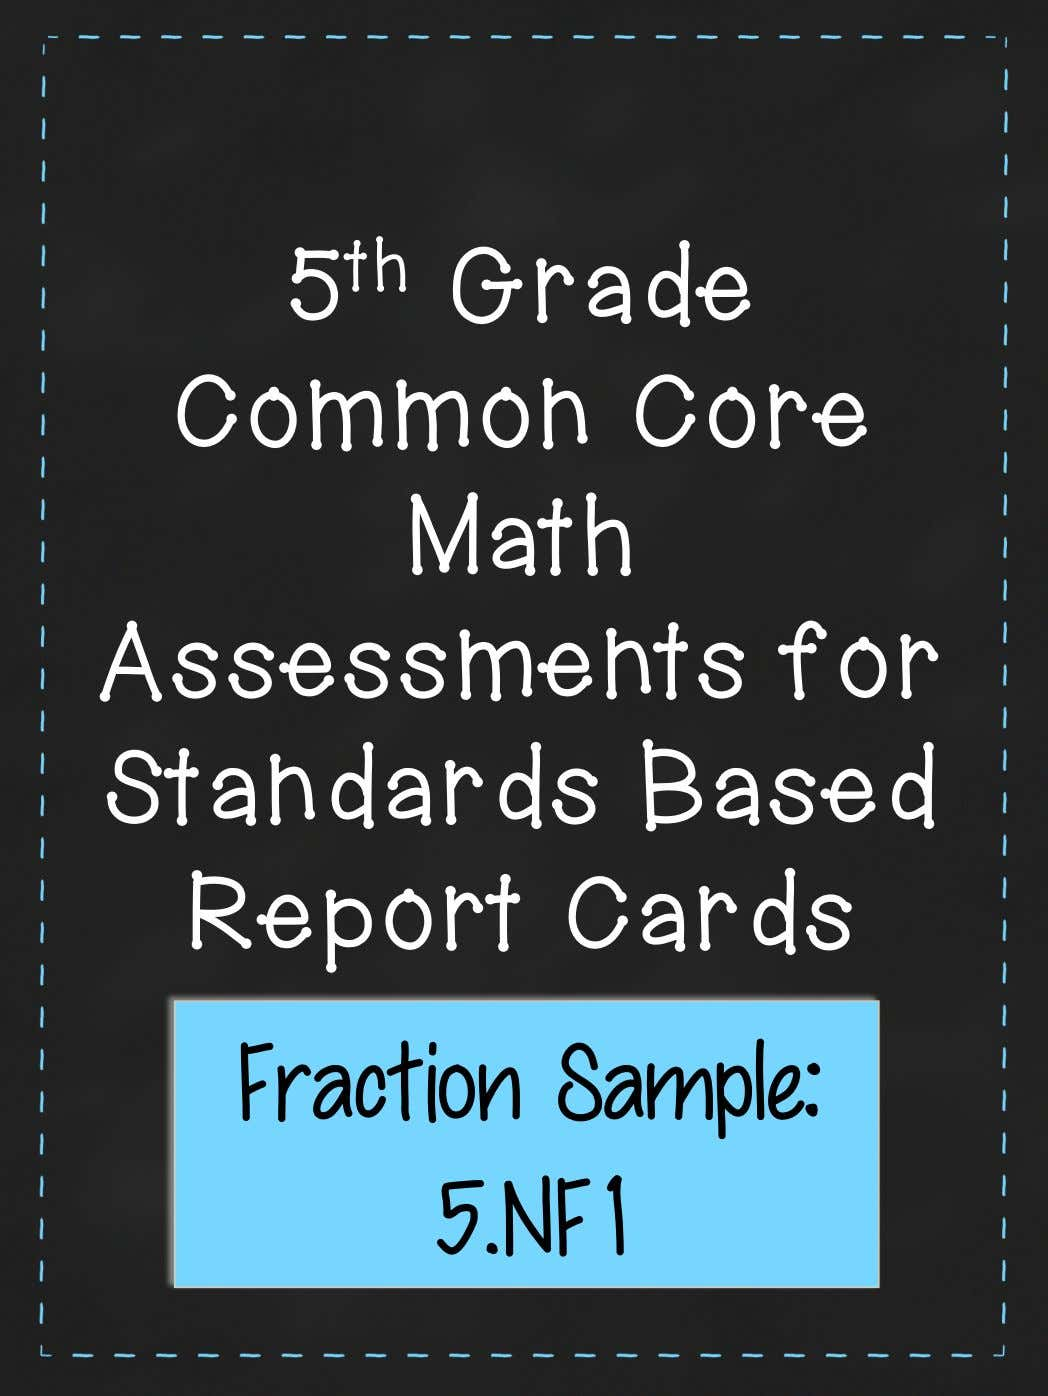 5 th Grade Common Core Math Assessments for Standards Based Report Cards Fraction Sample: 5.NF1